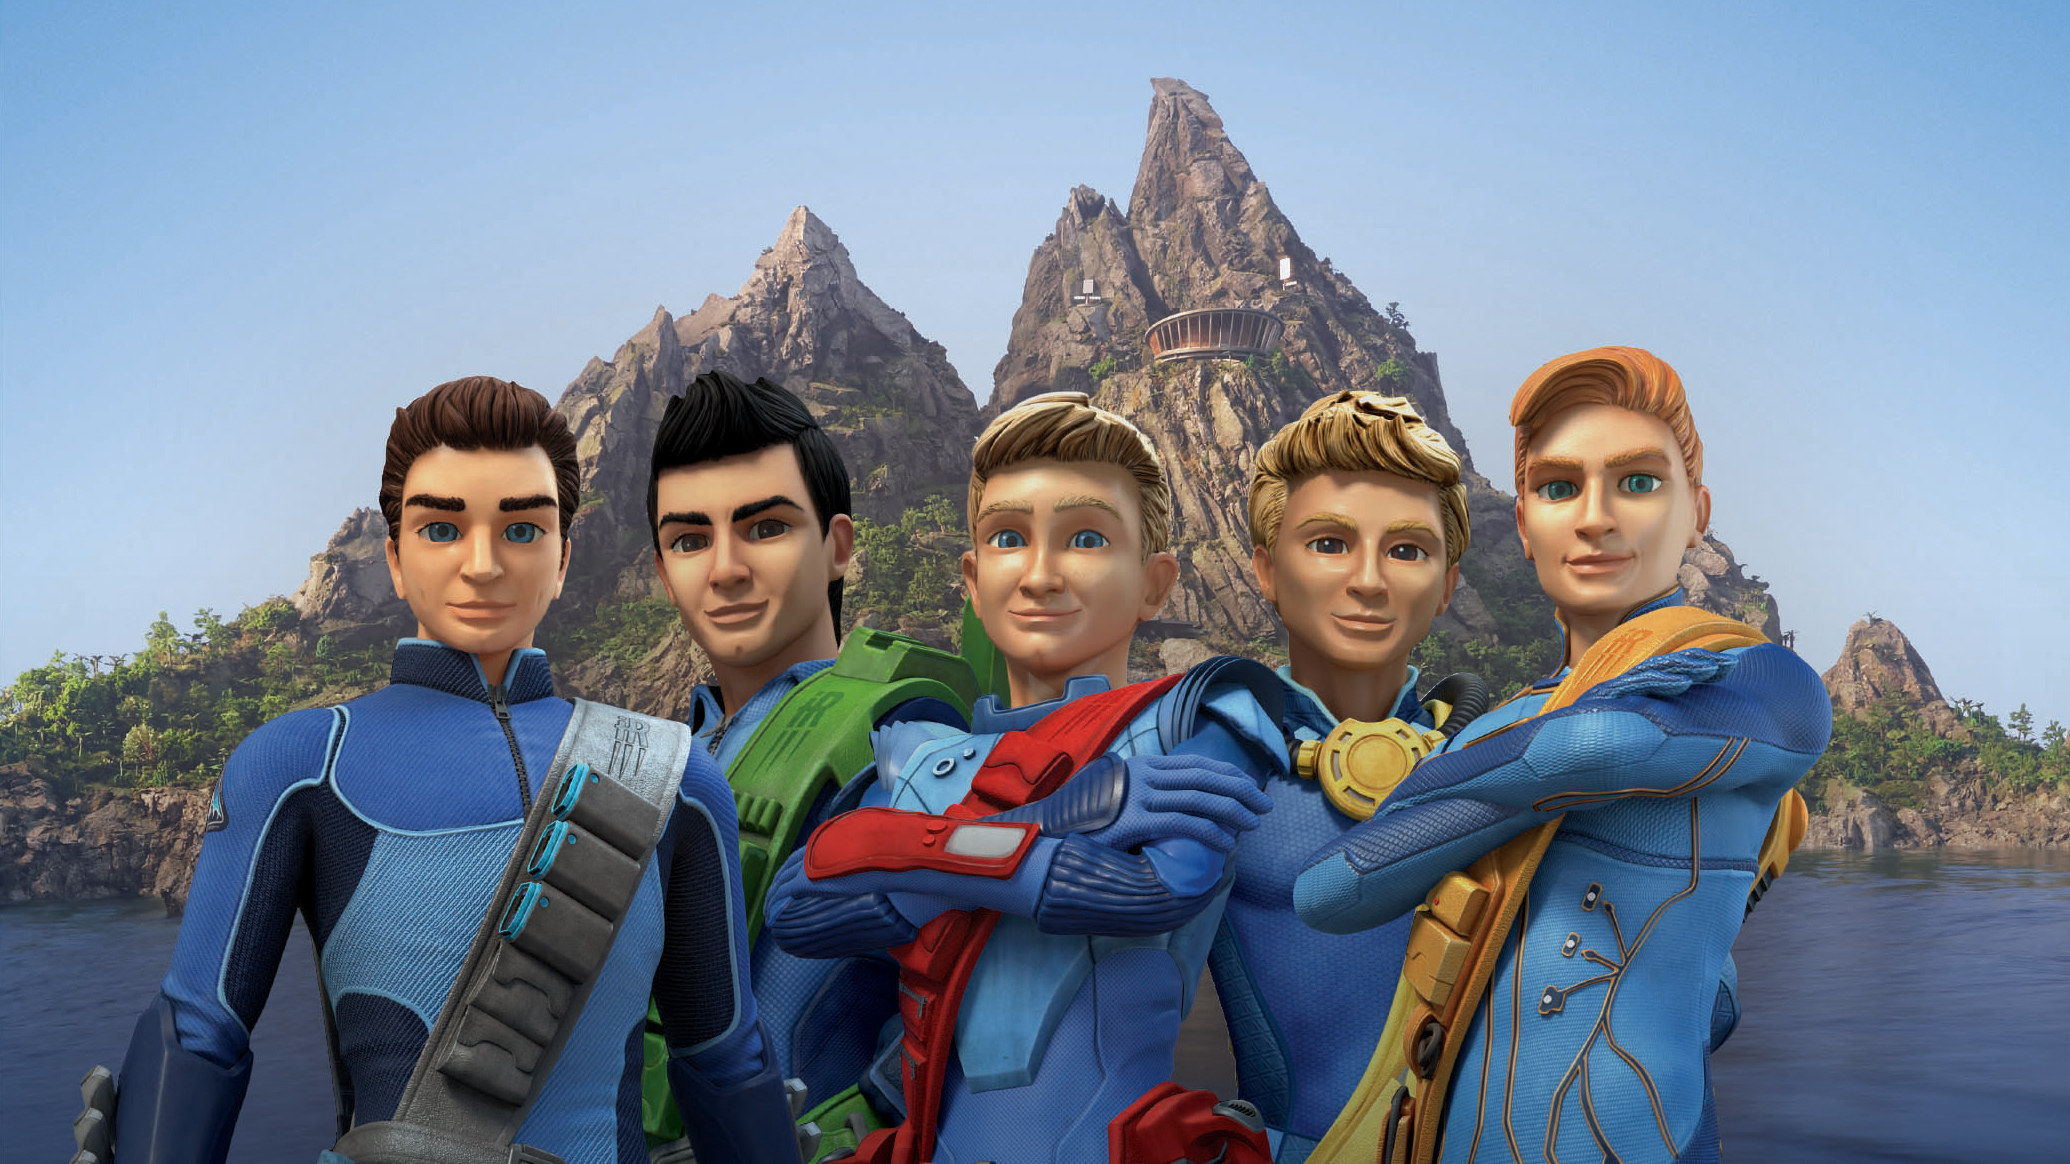 Thunderbirds Are Go, ITV, press image, 01 (2070x1164)